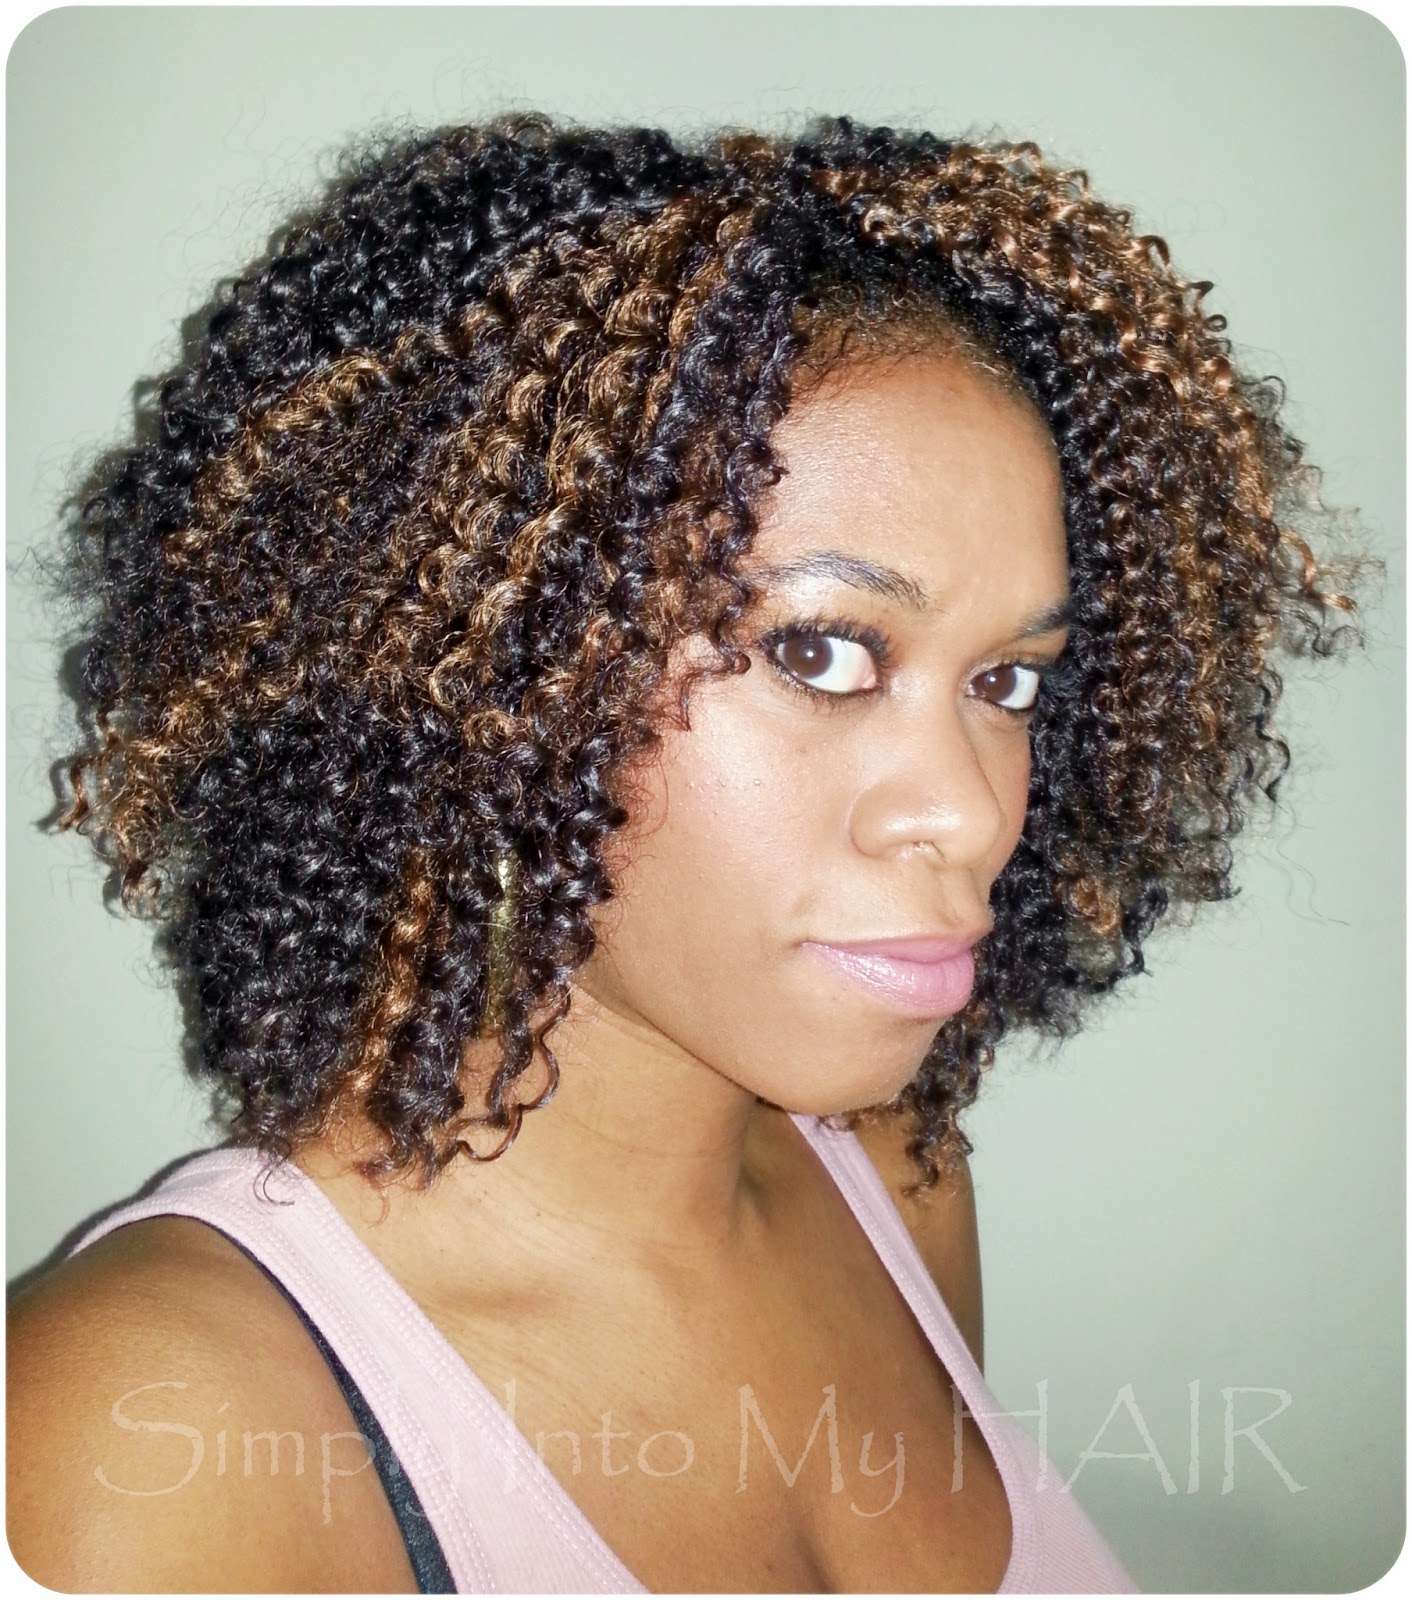 Crochet Hair Vs Sew In : Crochet Braids #7 Simply Into My HAIR